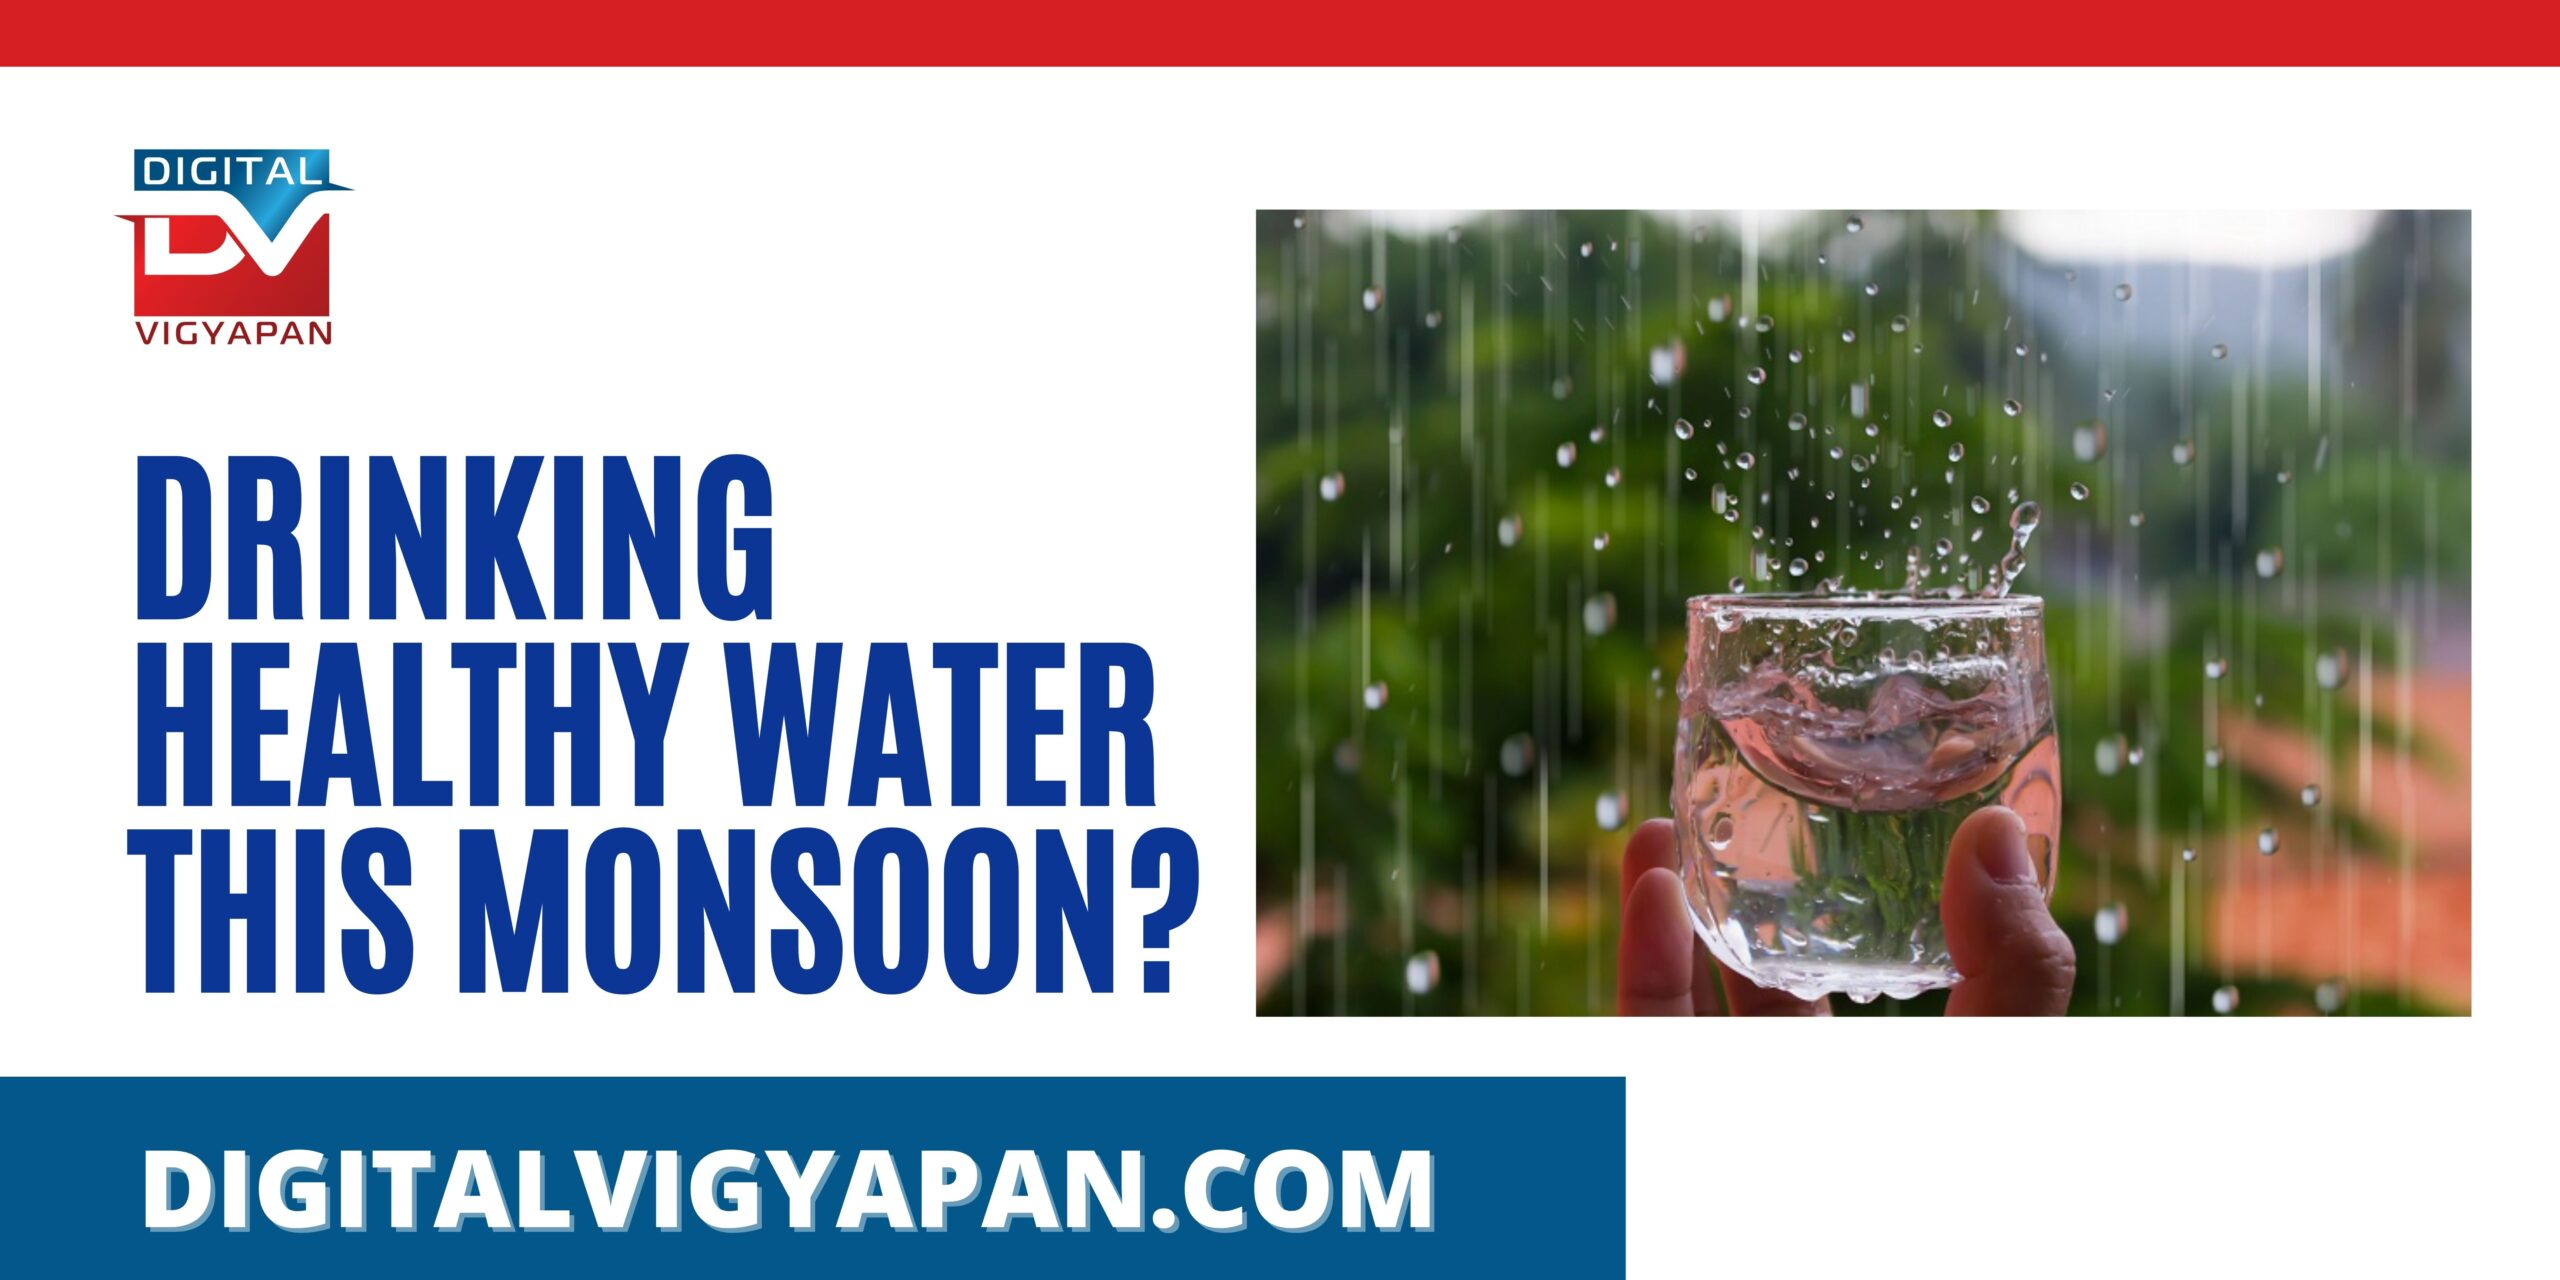 Drinking Healthy Water This Monsoon